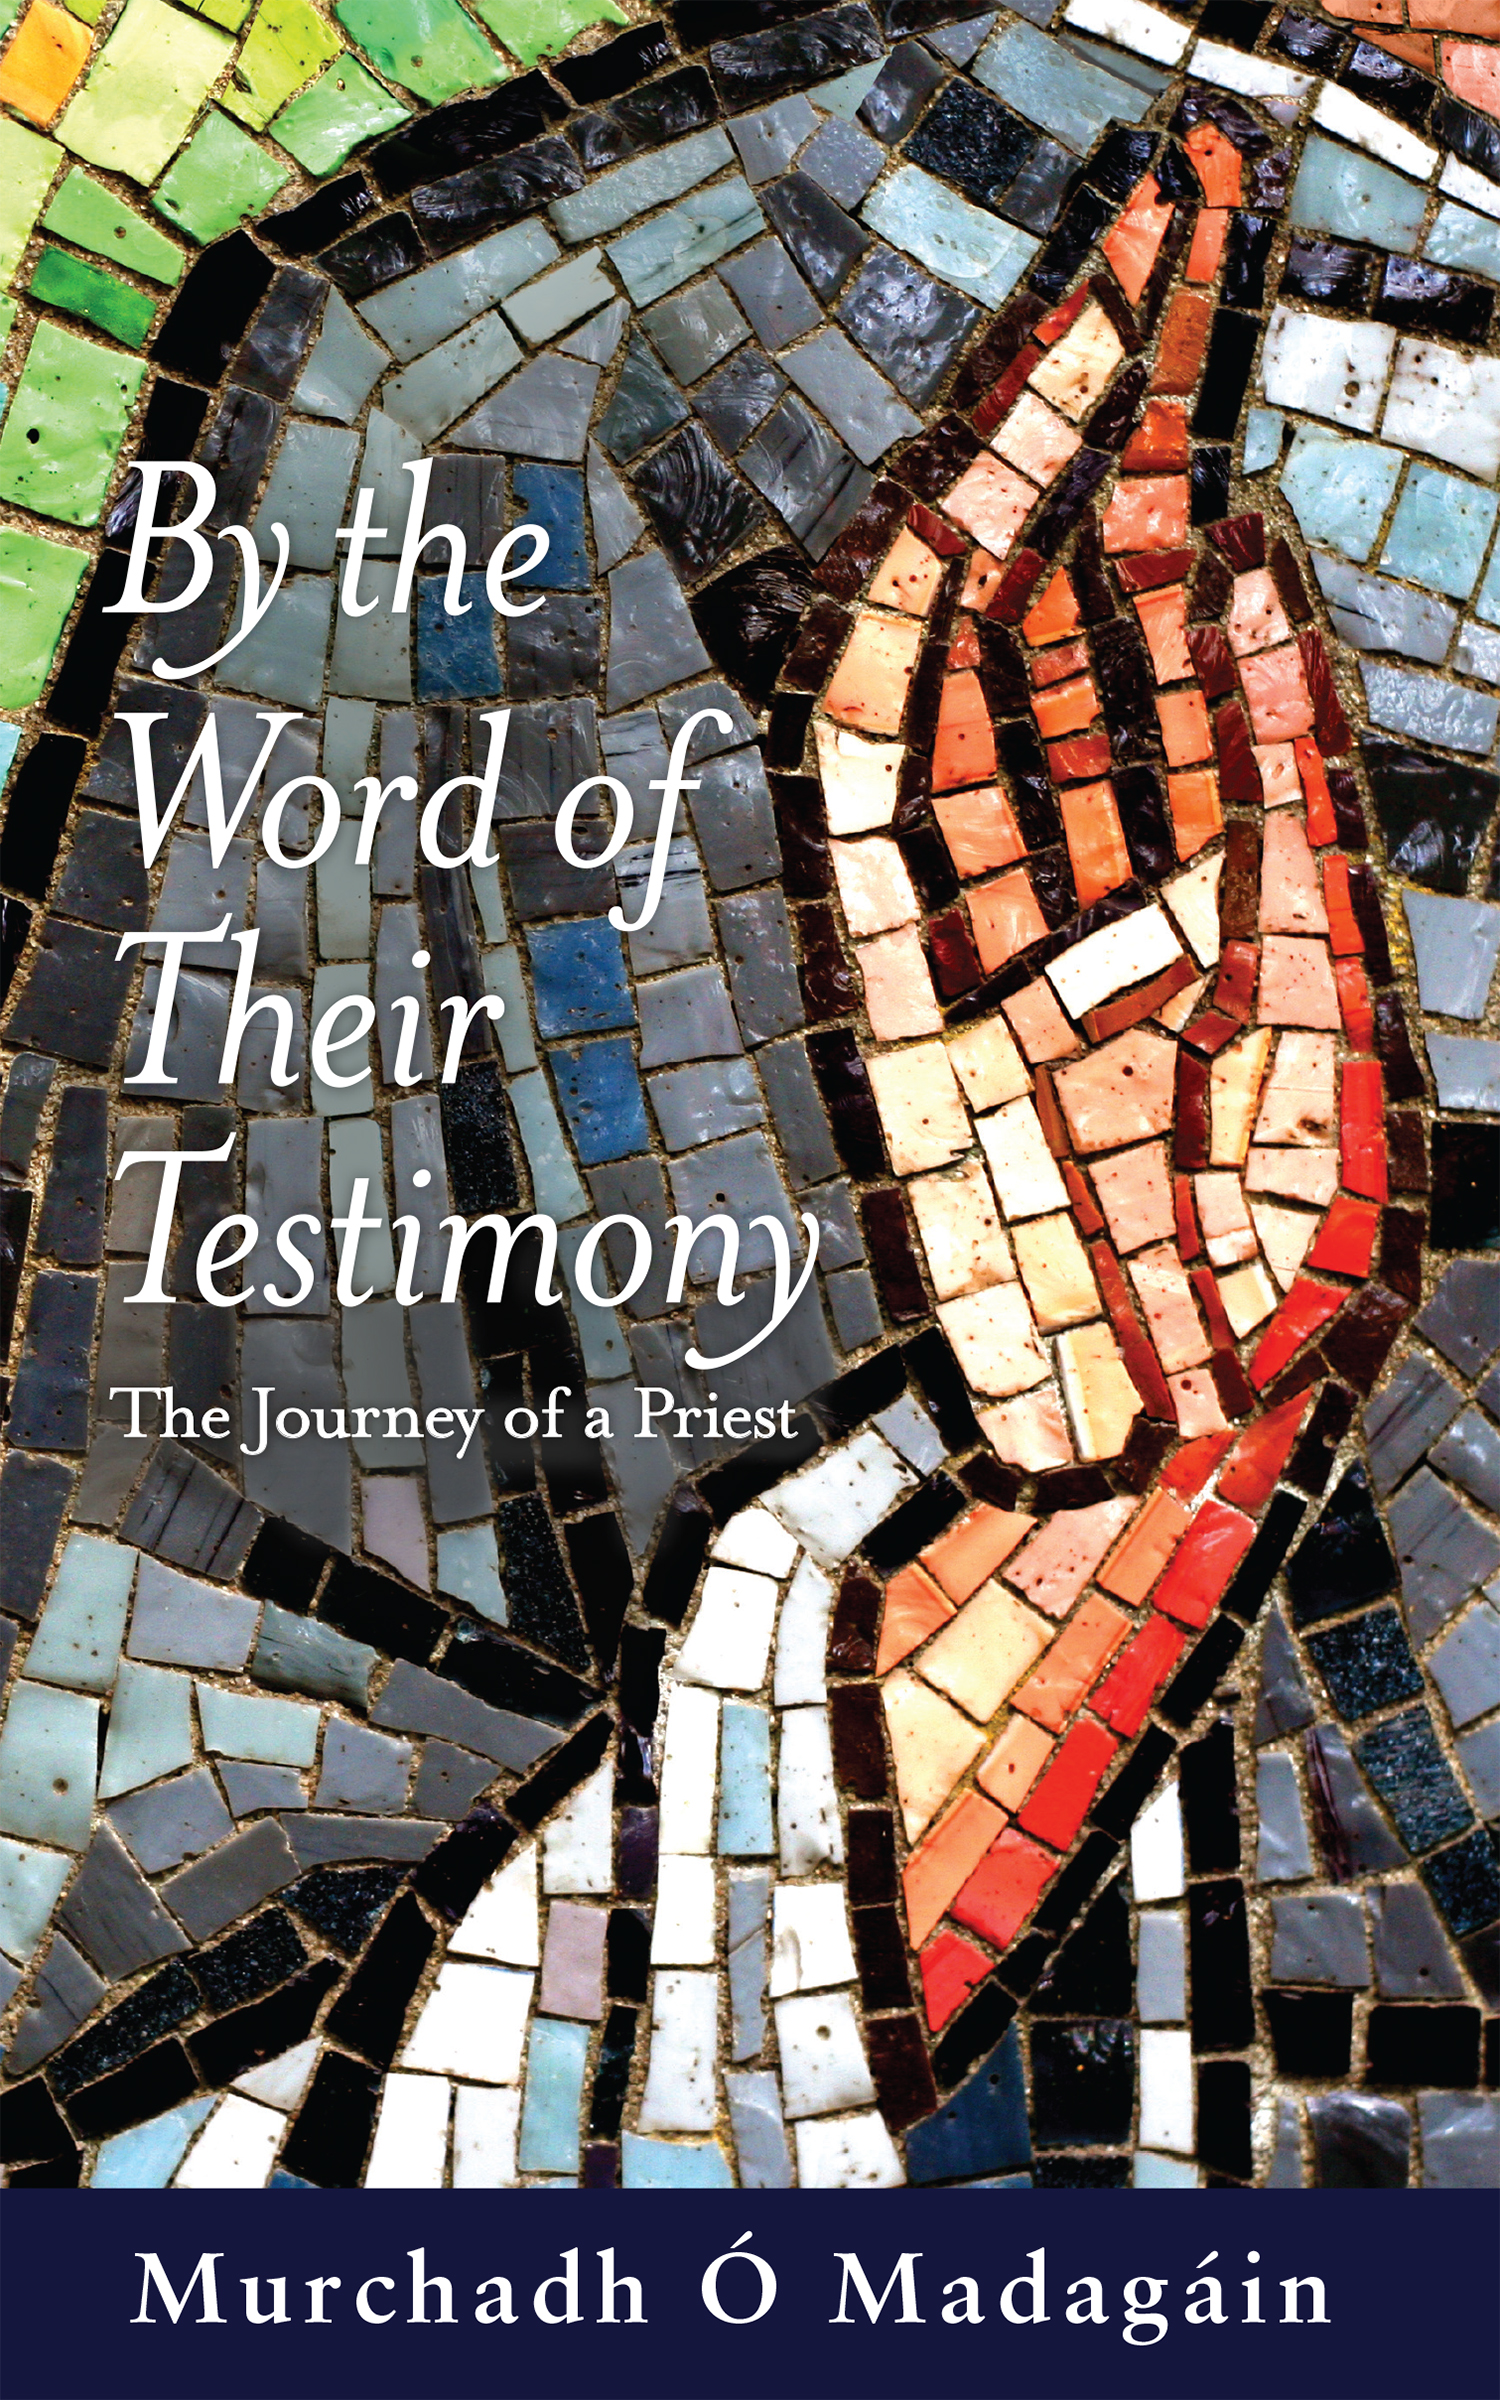 By the Word of Their Testimony